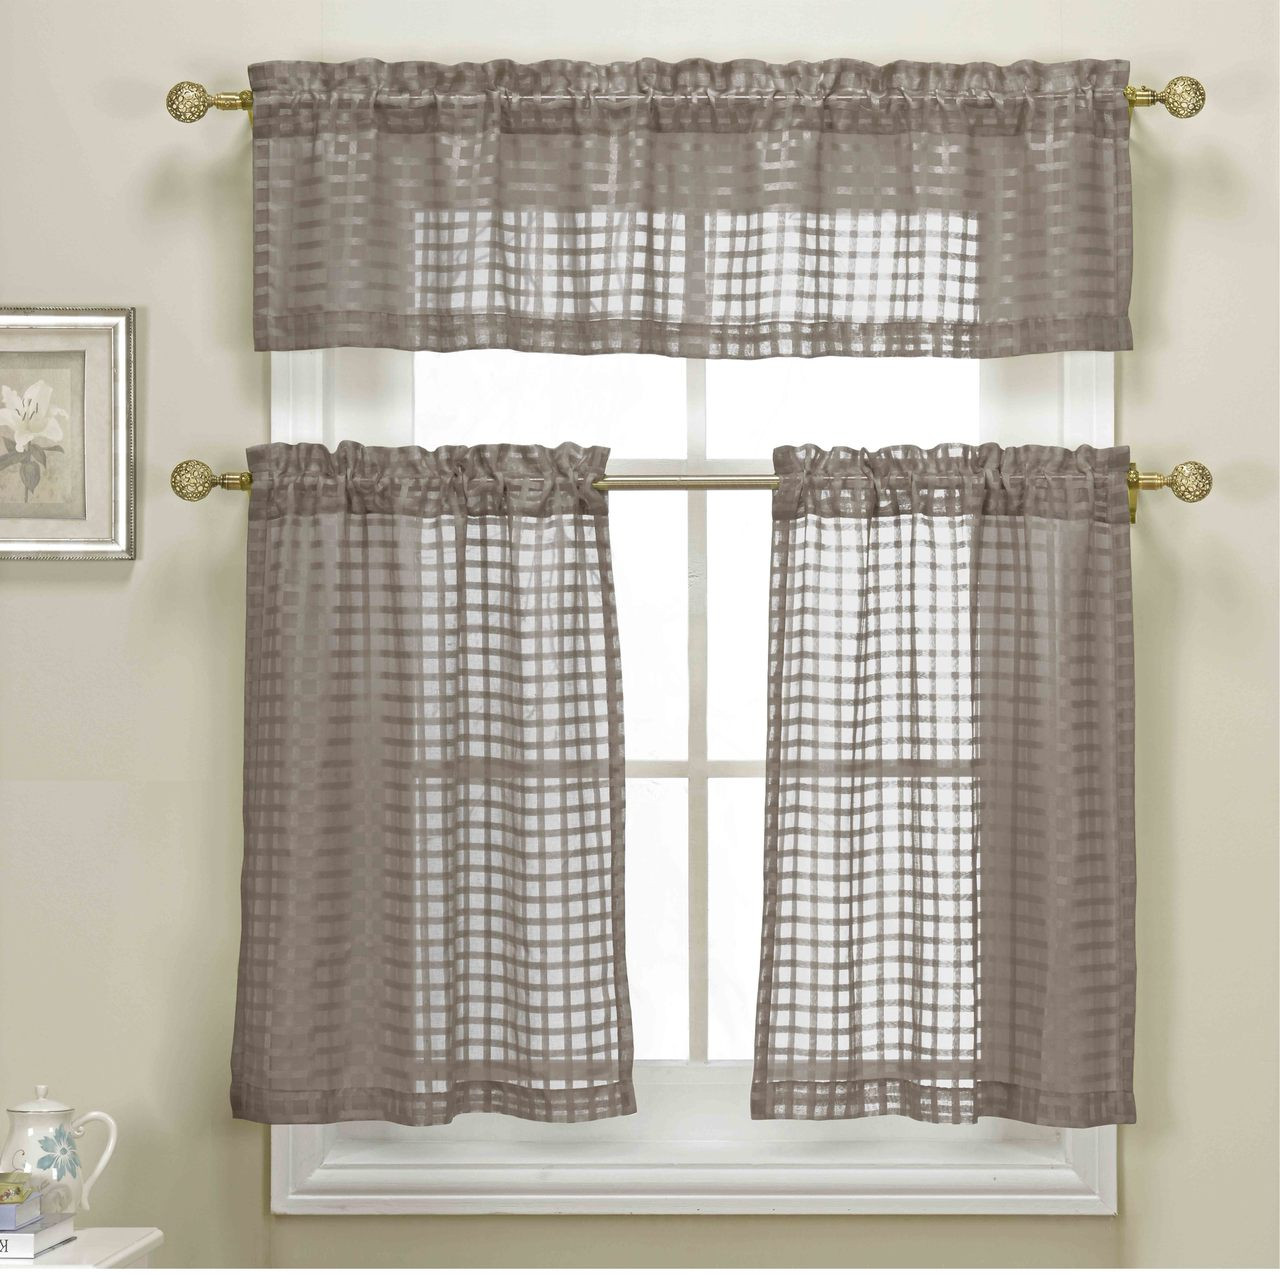 3 Piece Taupe Sheer Kitchen Curtain Set Woven Check Design 1 Valance 2 Tier Panels My Infinity Store